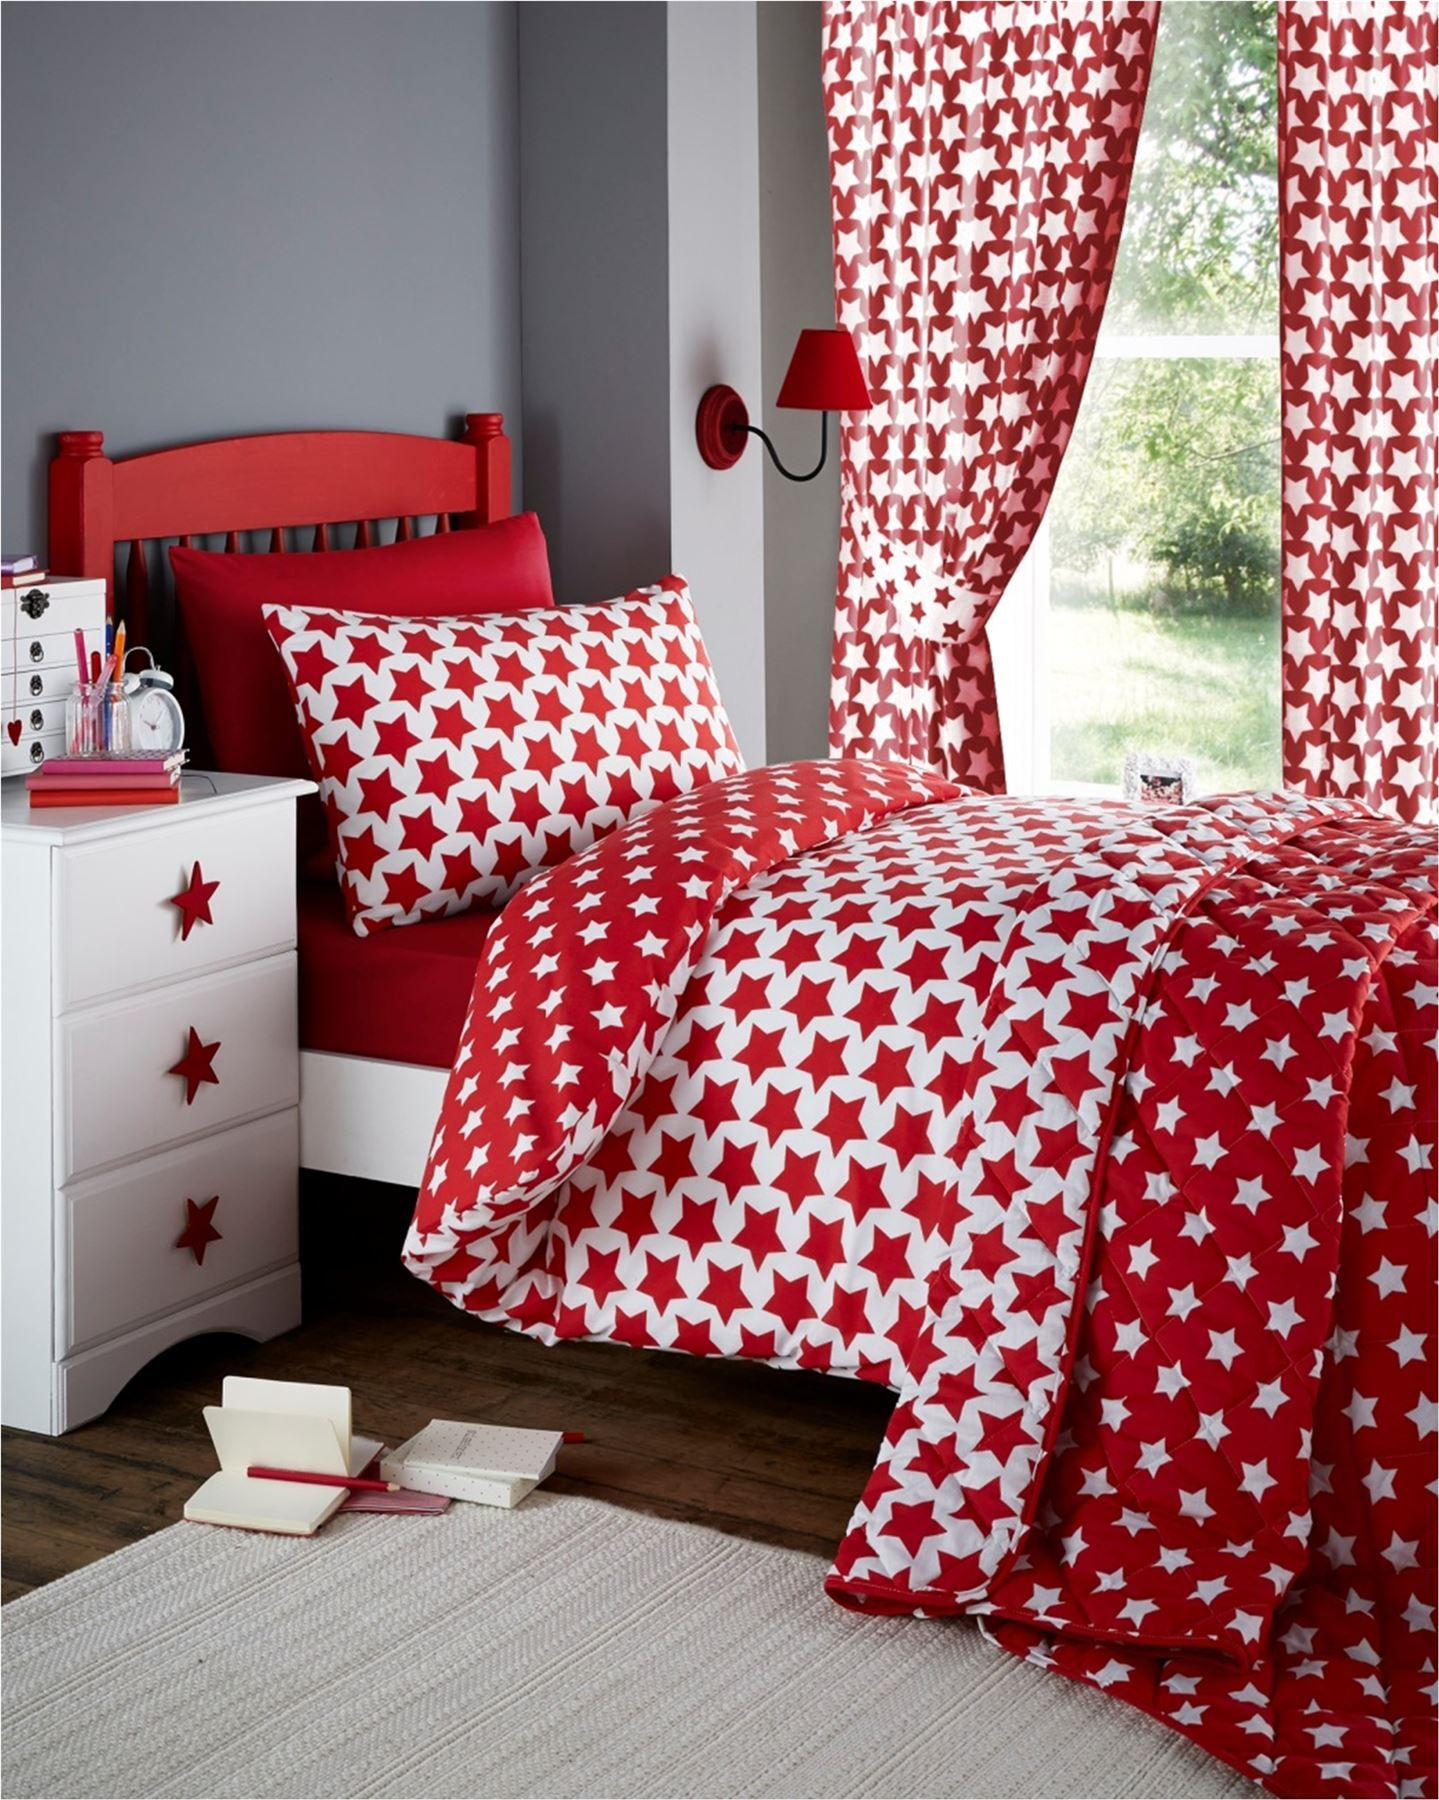 Details about Girls Childrens Quilt Duvet Cover & Pillowcase ...